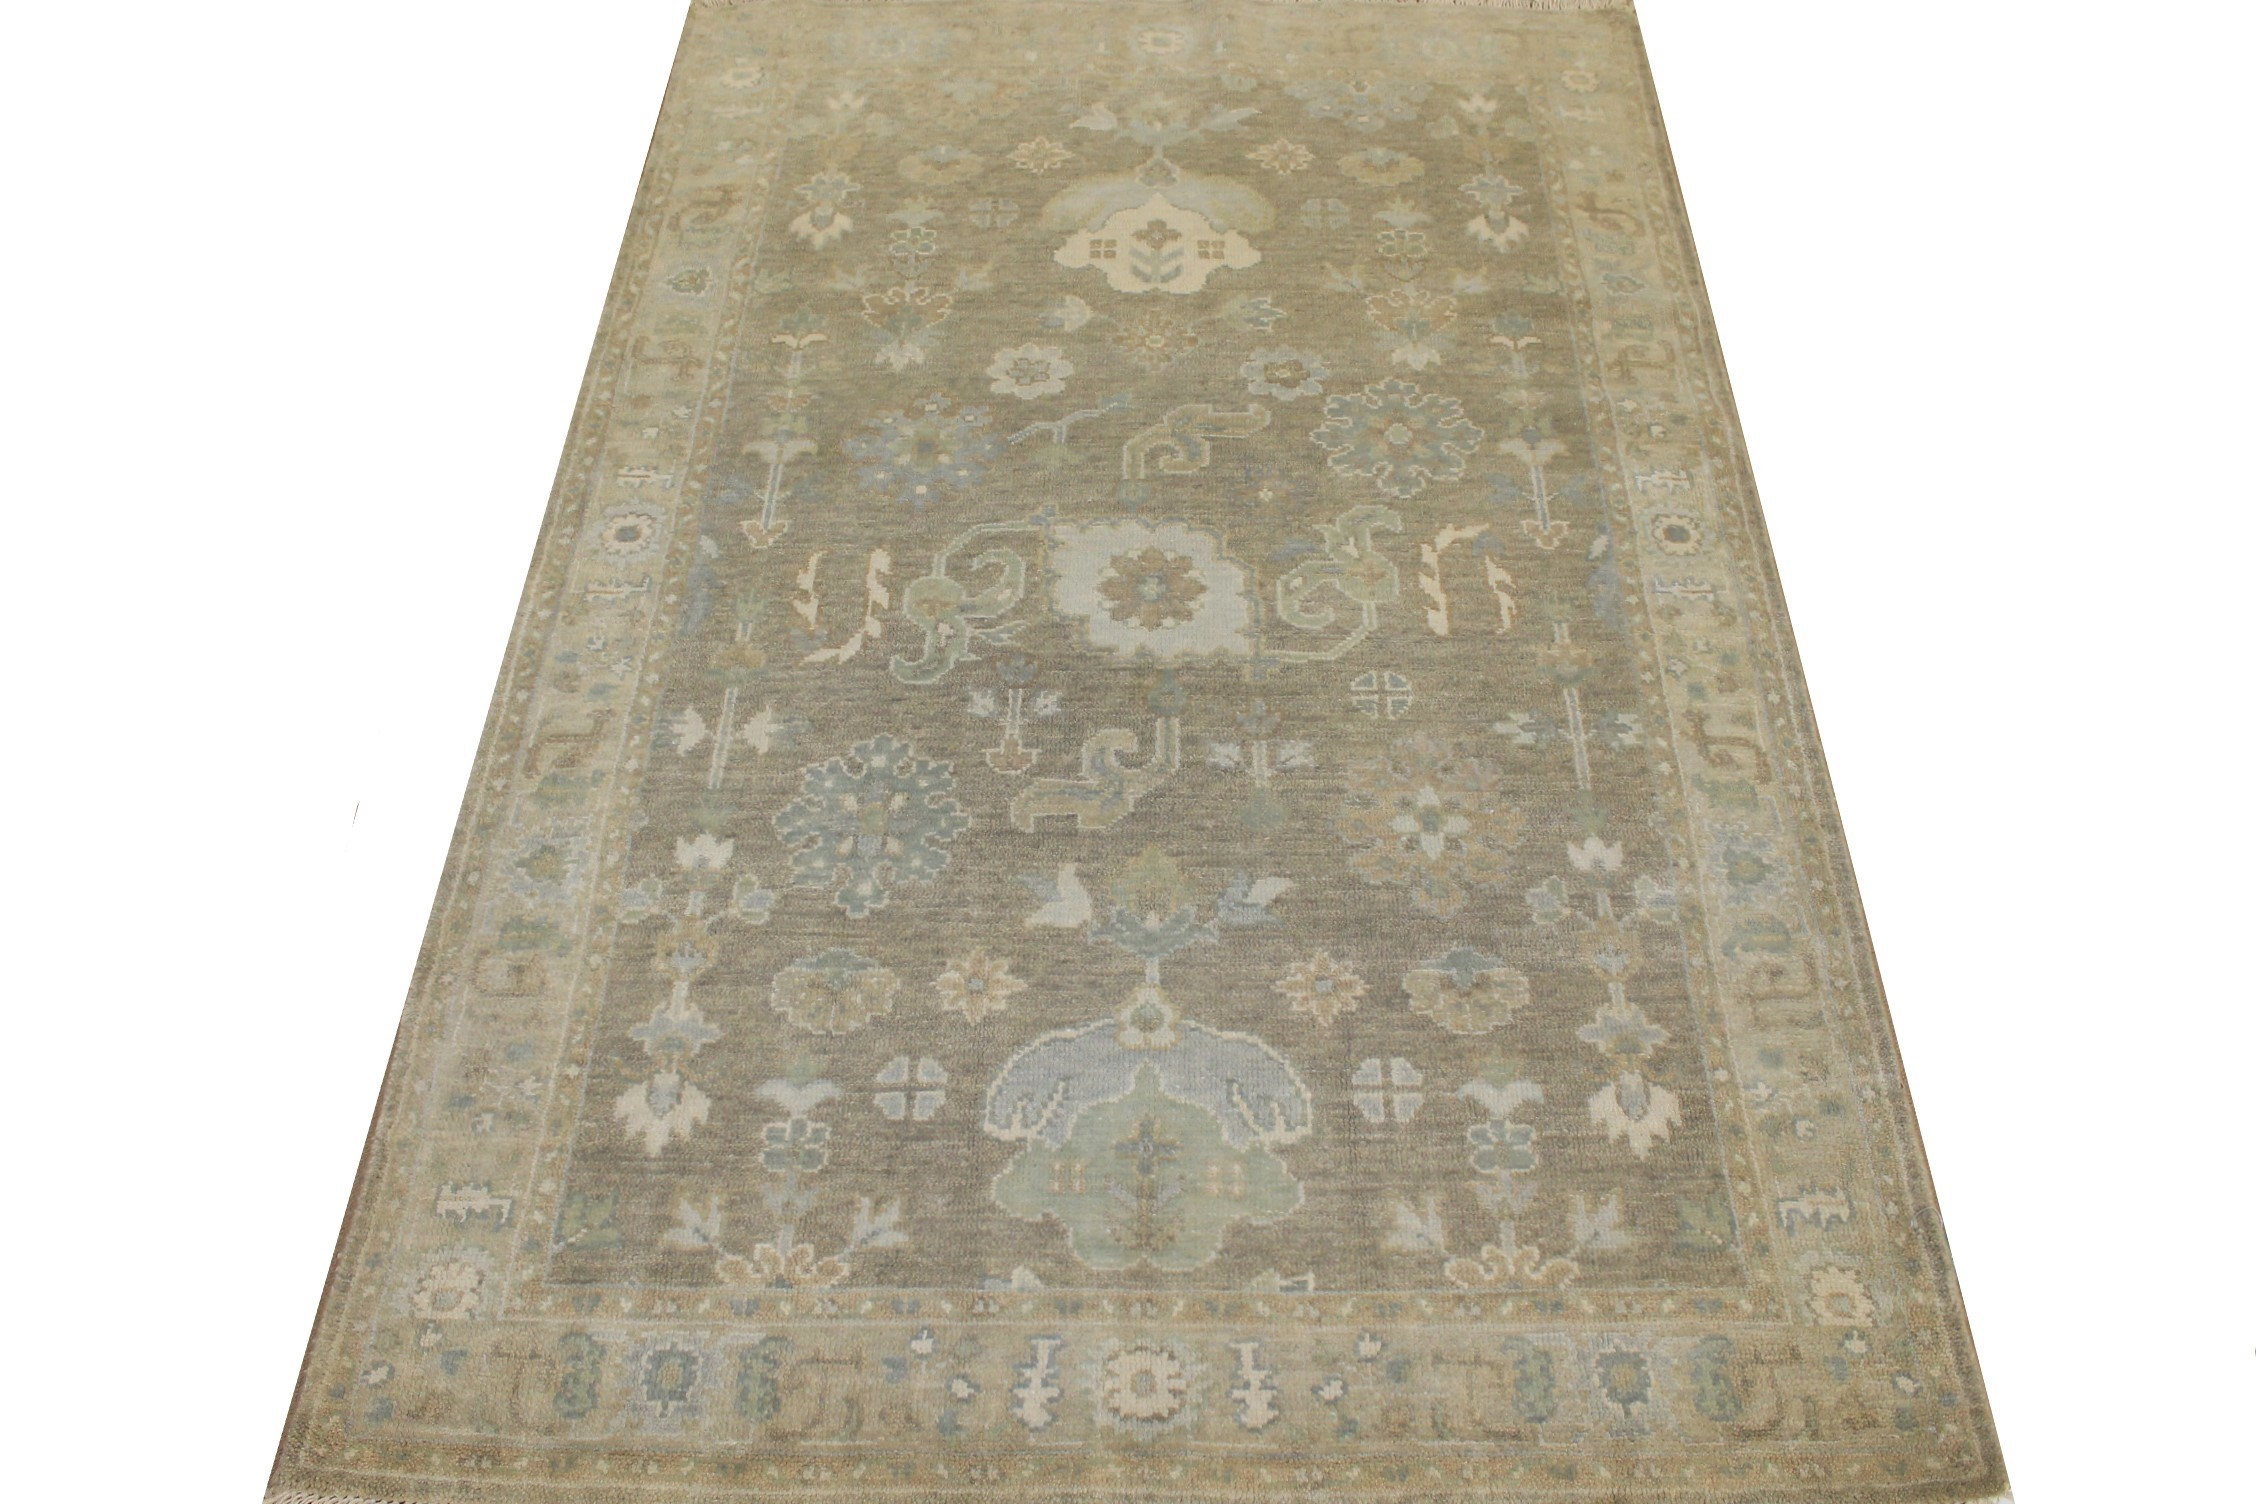 4x6 Oushak Hand Knotted Wool Area Rug - MR025140